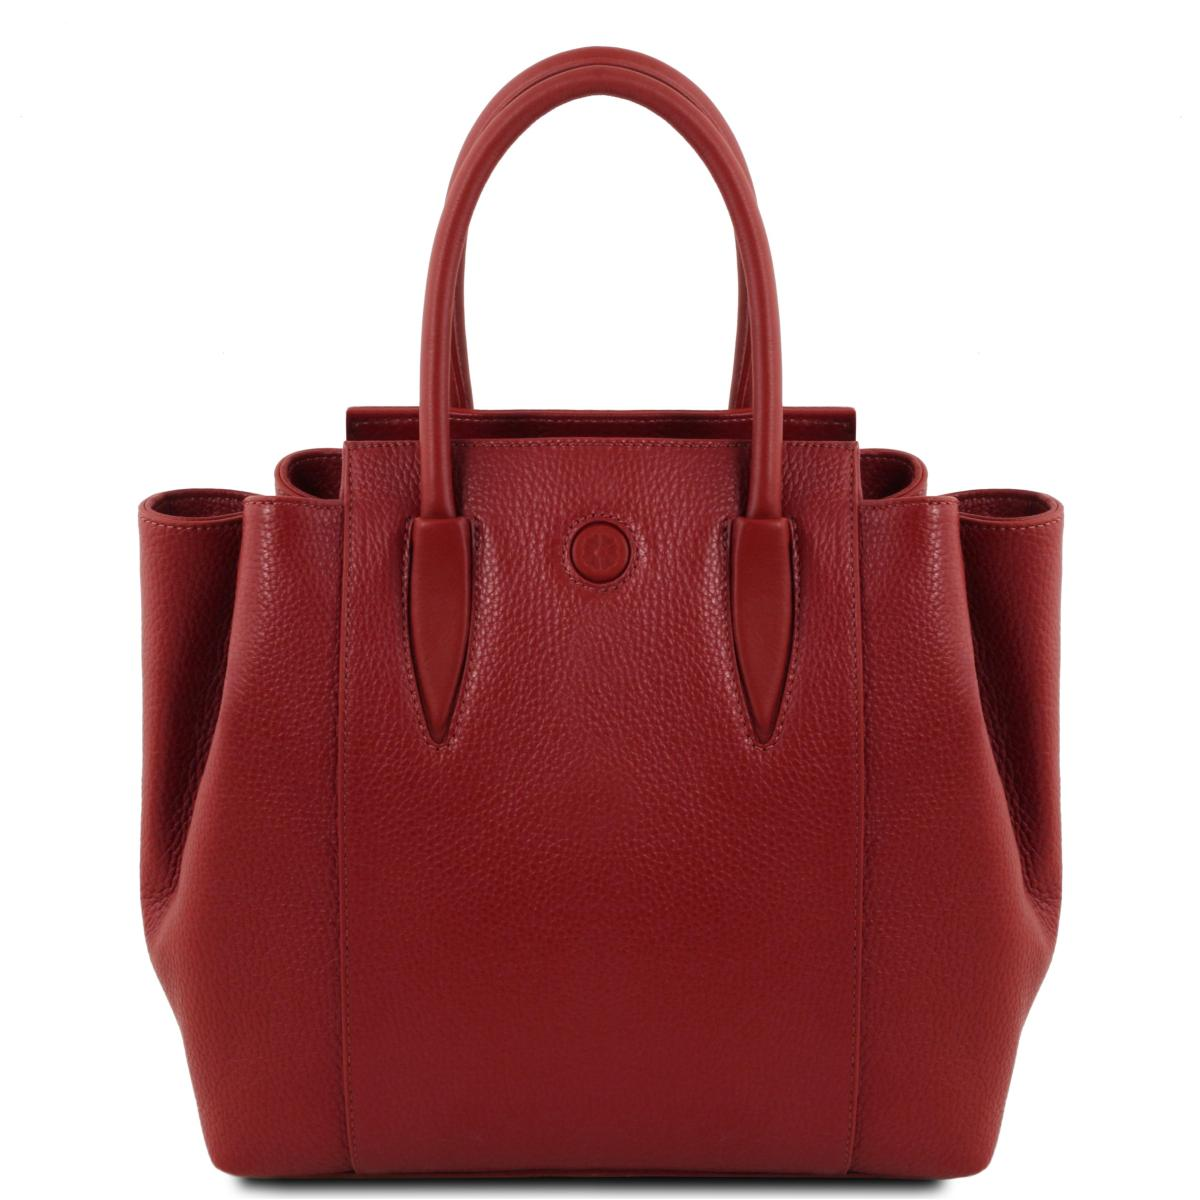 073ad25bf7 Sac à Main Cuir Souple Femme Rouge - Tuscany Leather -